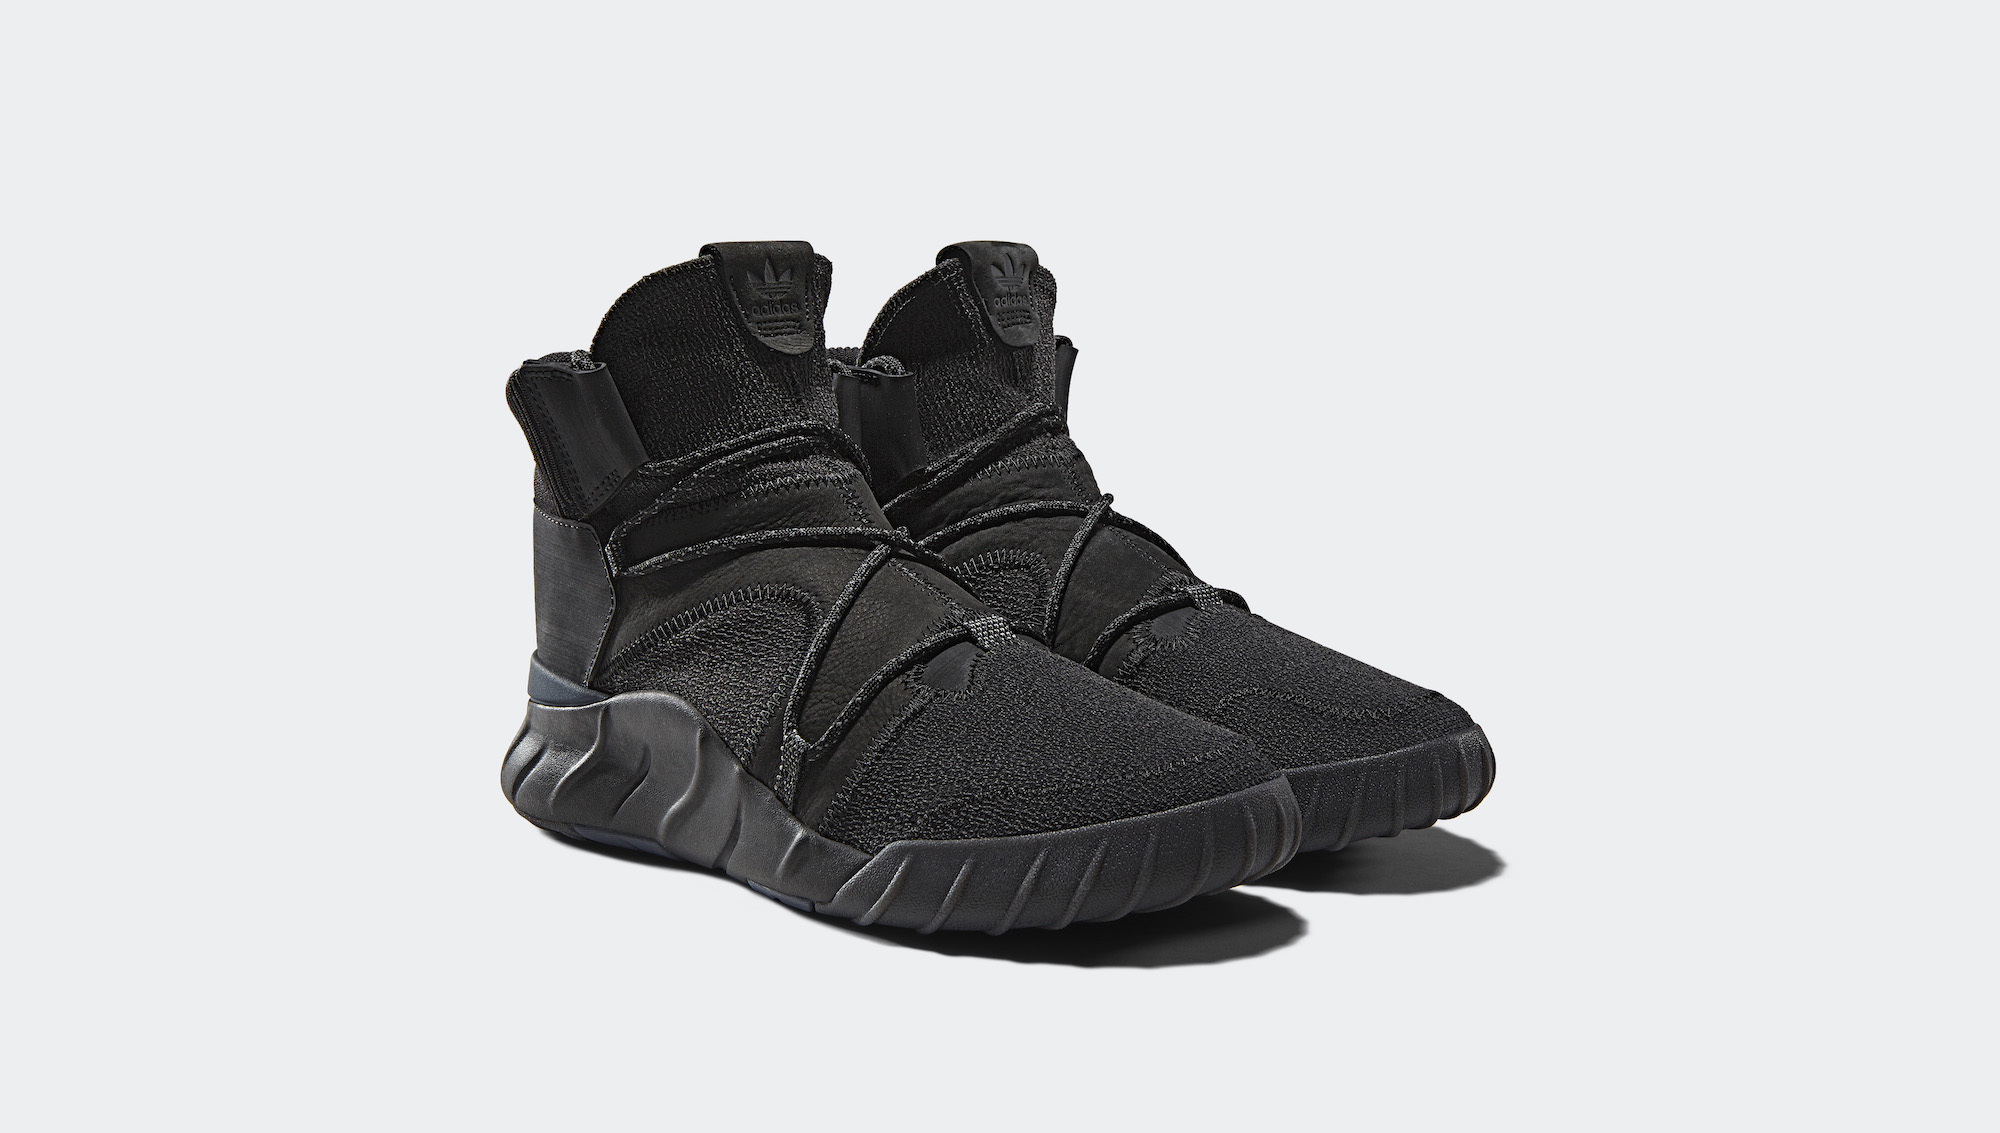 Cheap Adidas Tubular Nova Primeknit Triple Black stickabush